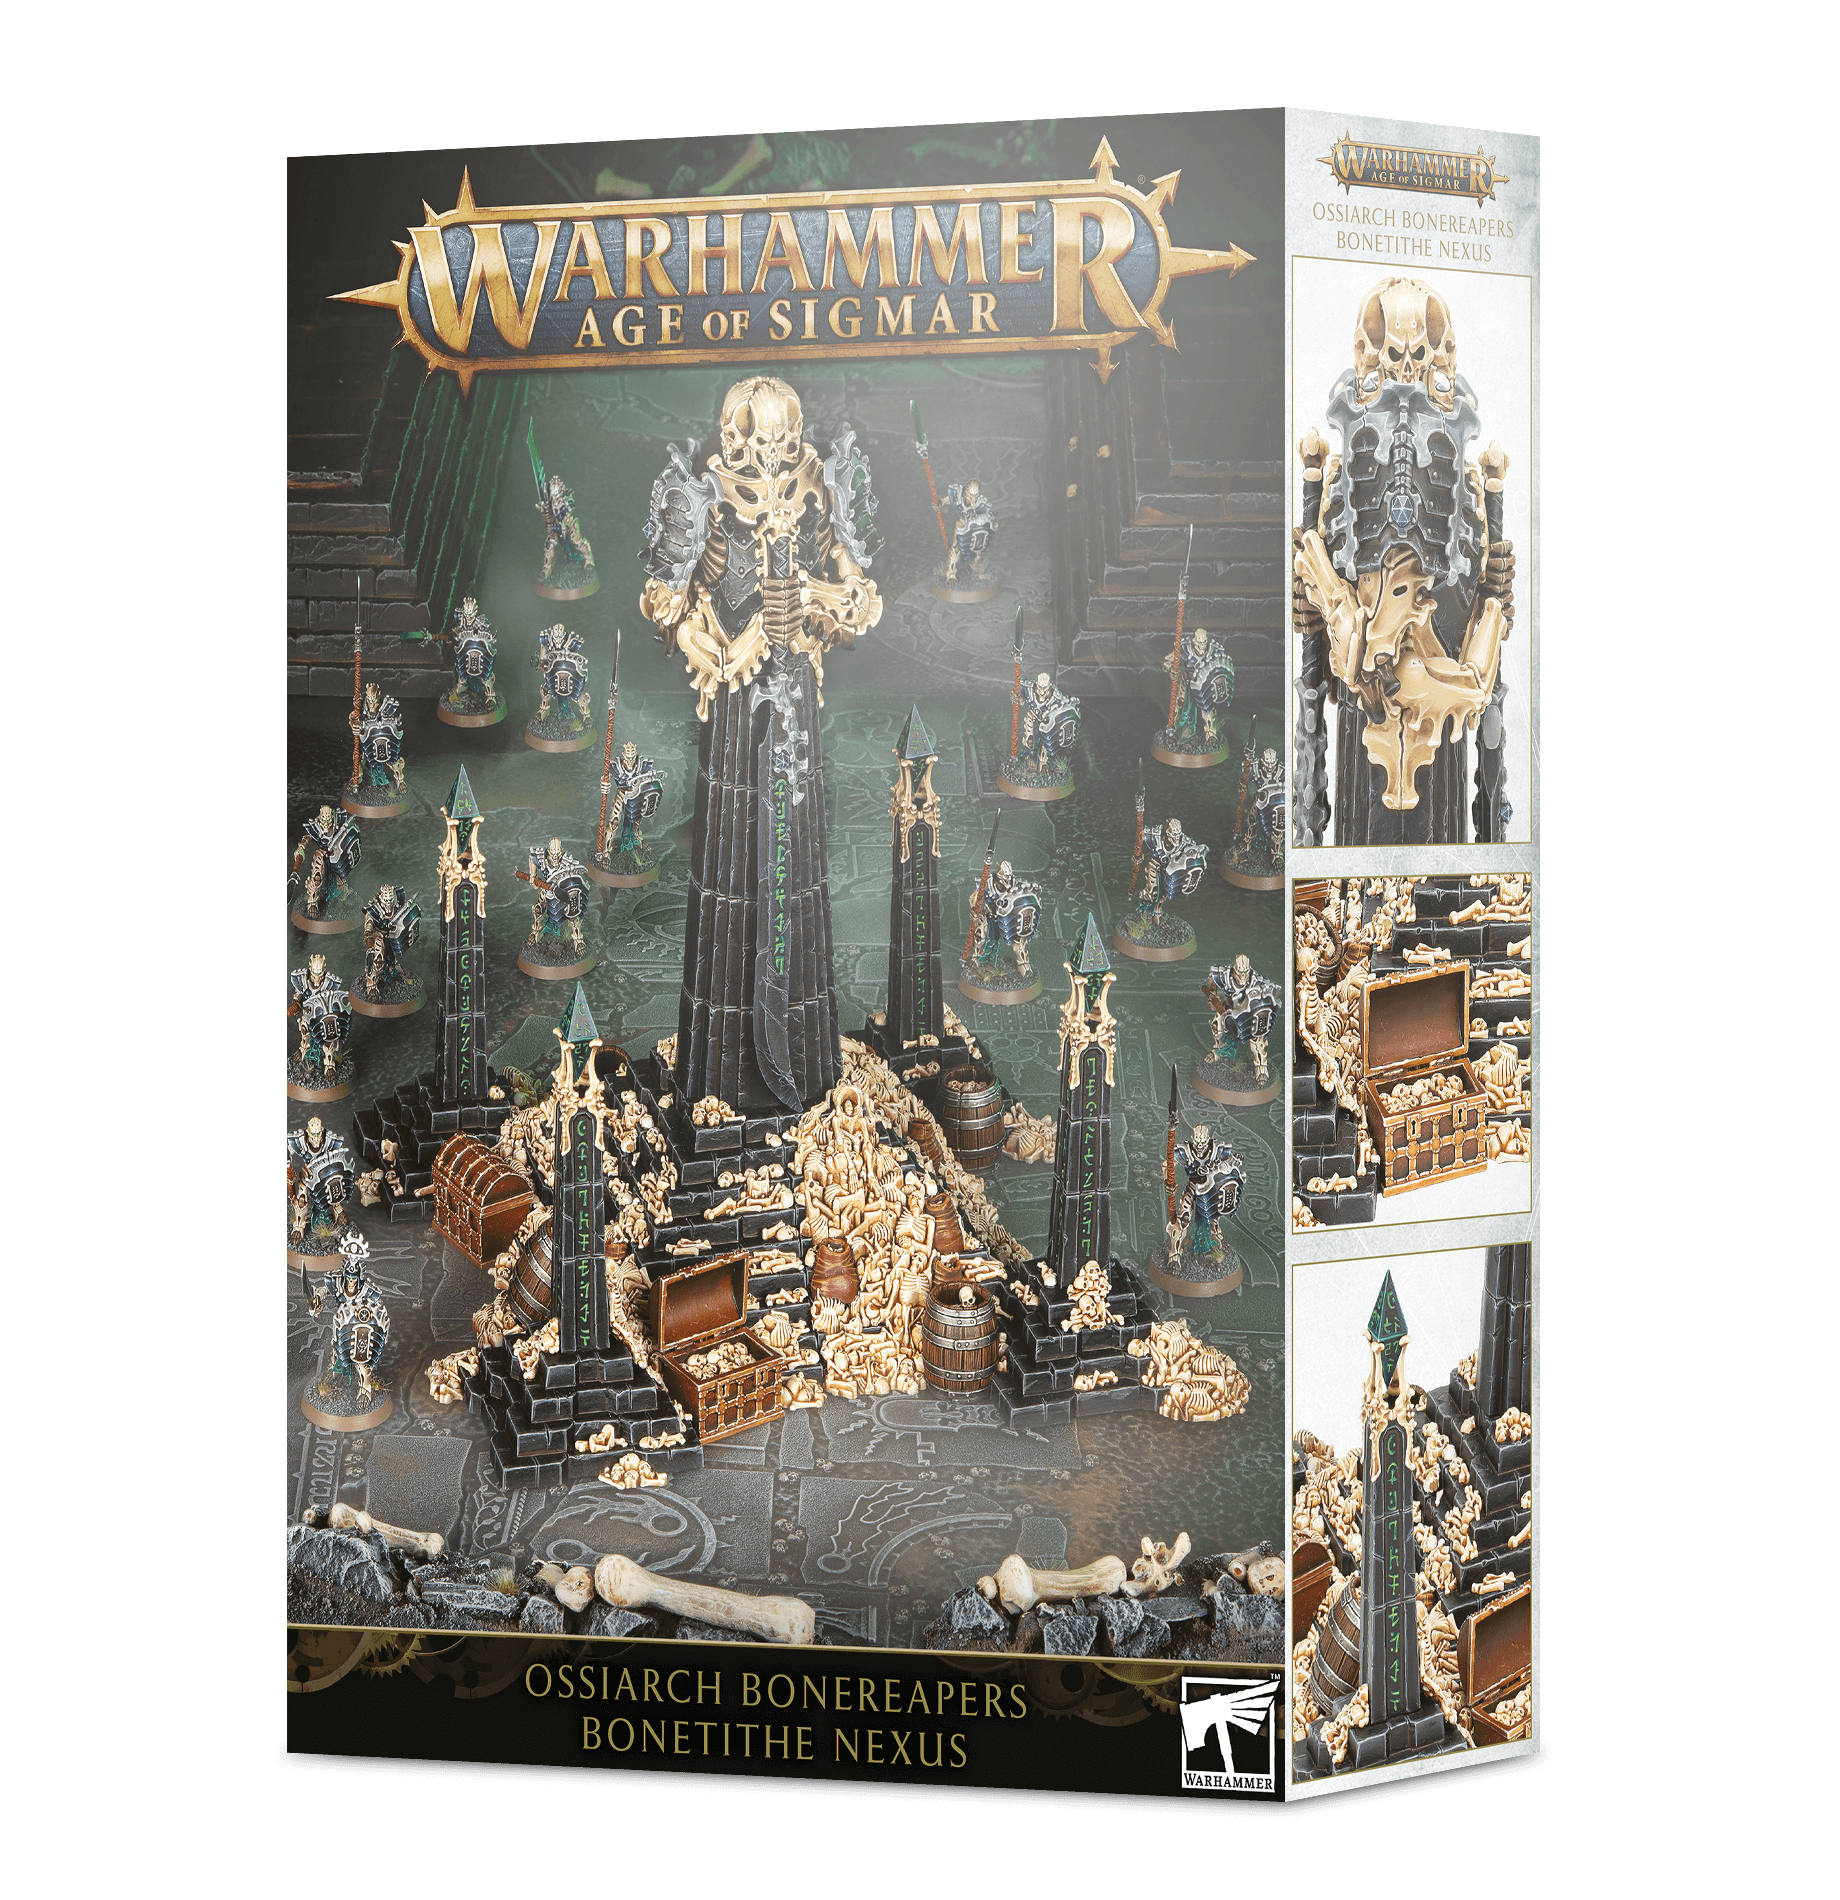 Warhammer Age Of Sigmar: Ossiarch Bonereapers: Bone-tithe Nexus